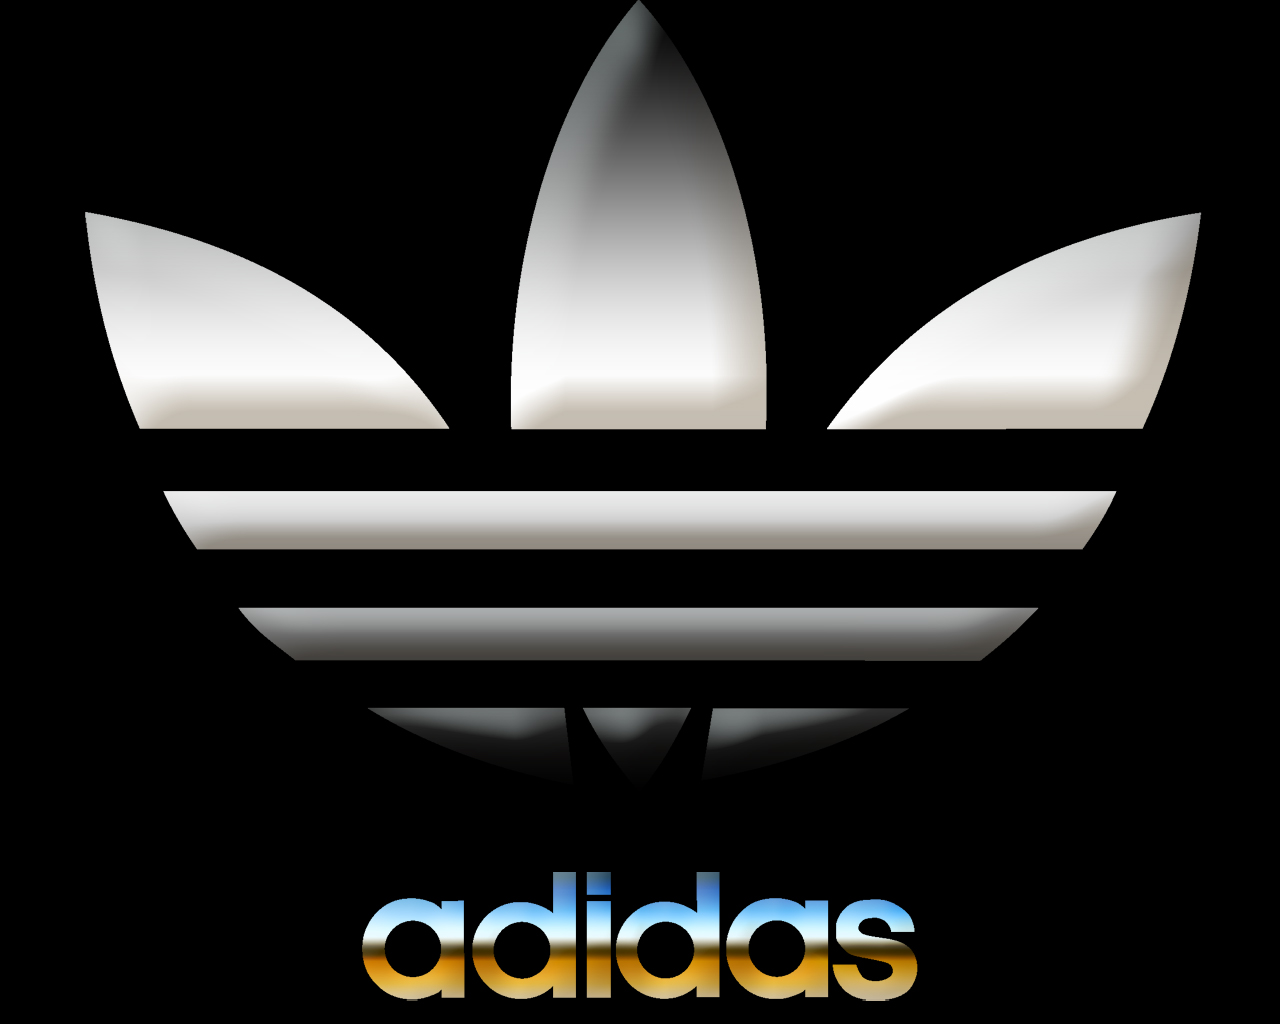 adidas-logo-wallpaper-6297-hd-wallpapers